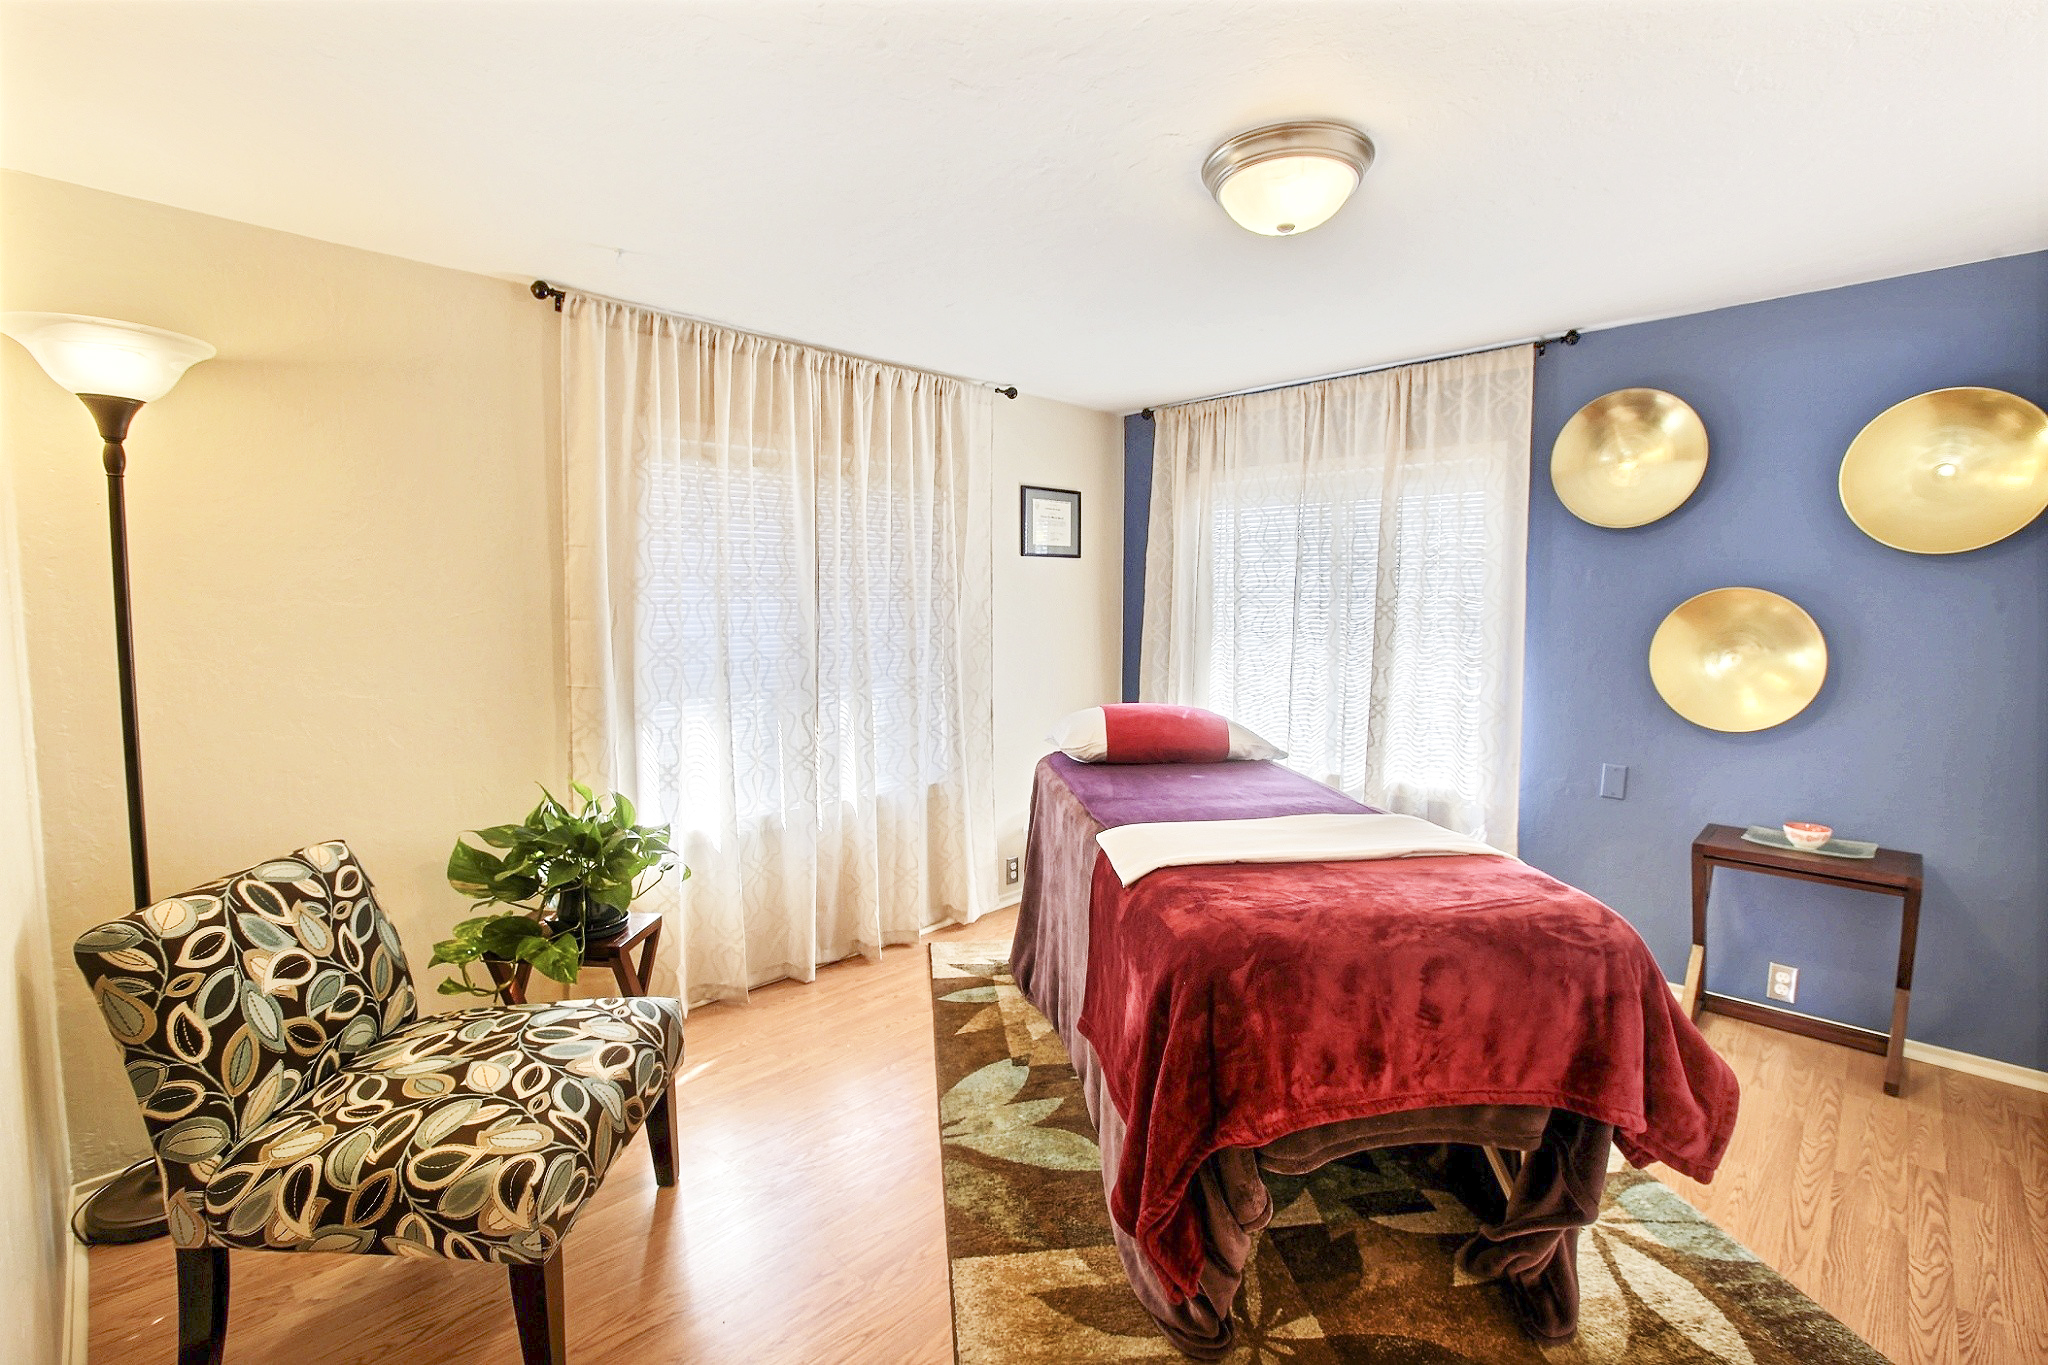 Sapphire Room - Acupuncture